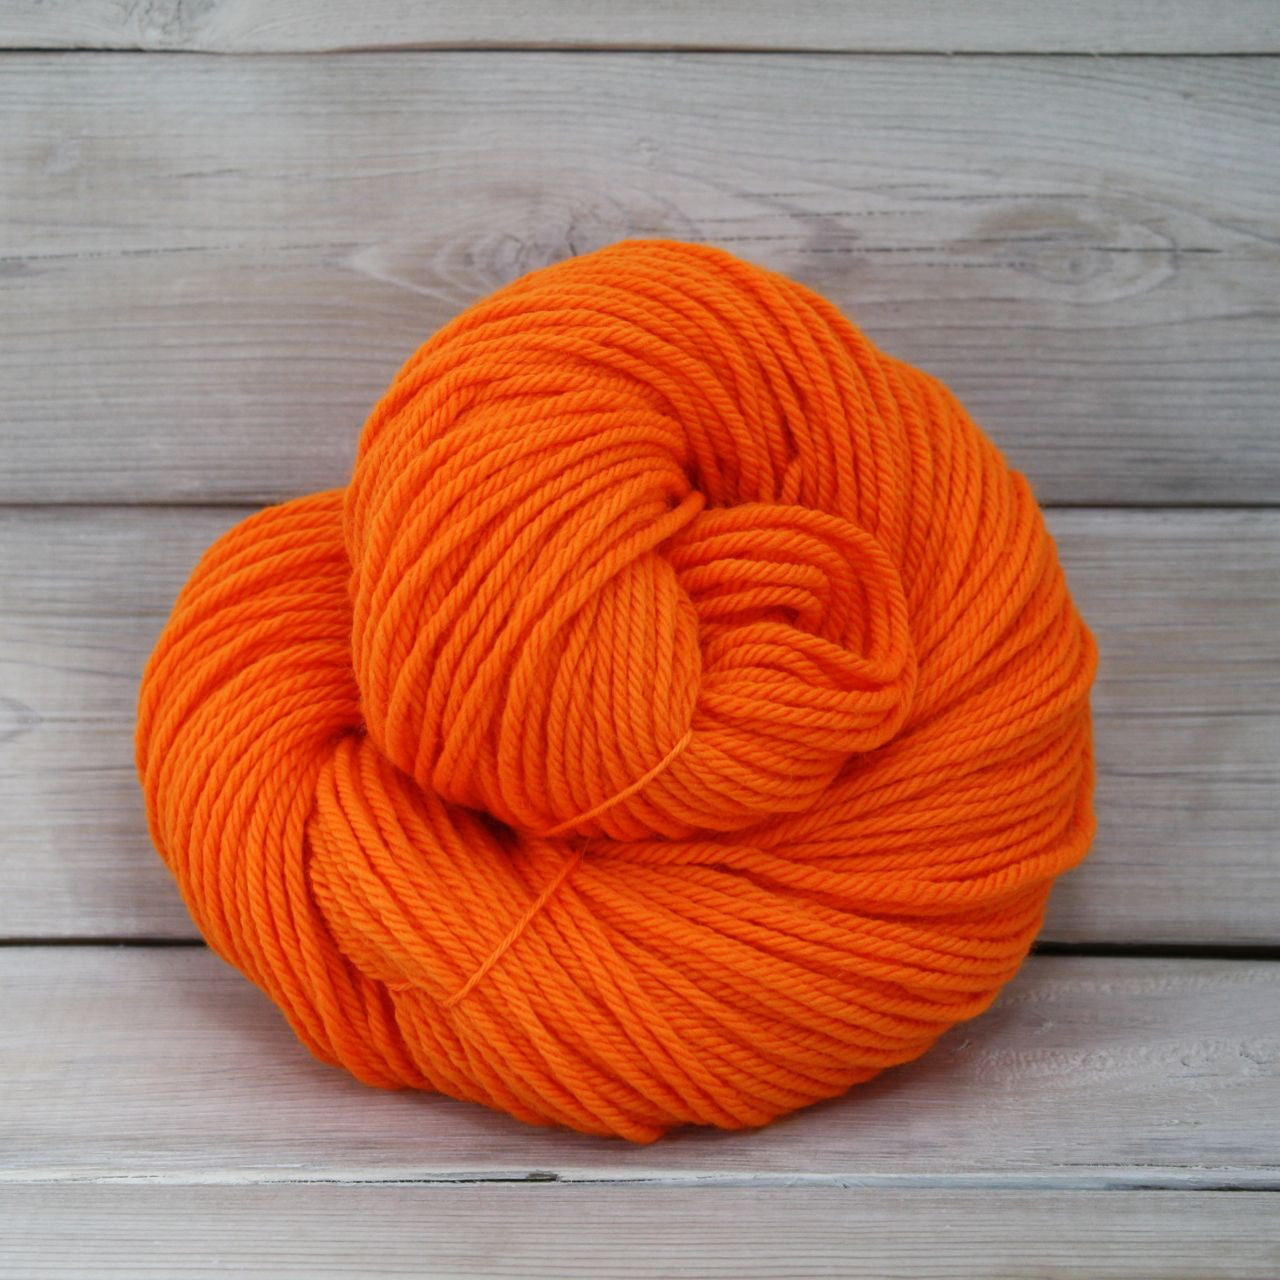 Luna Grey Fiber Arts | Supernova Yarn | Colorway: Safety Orange